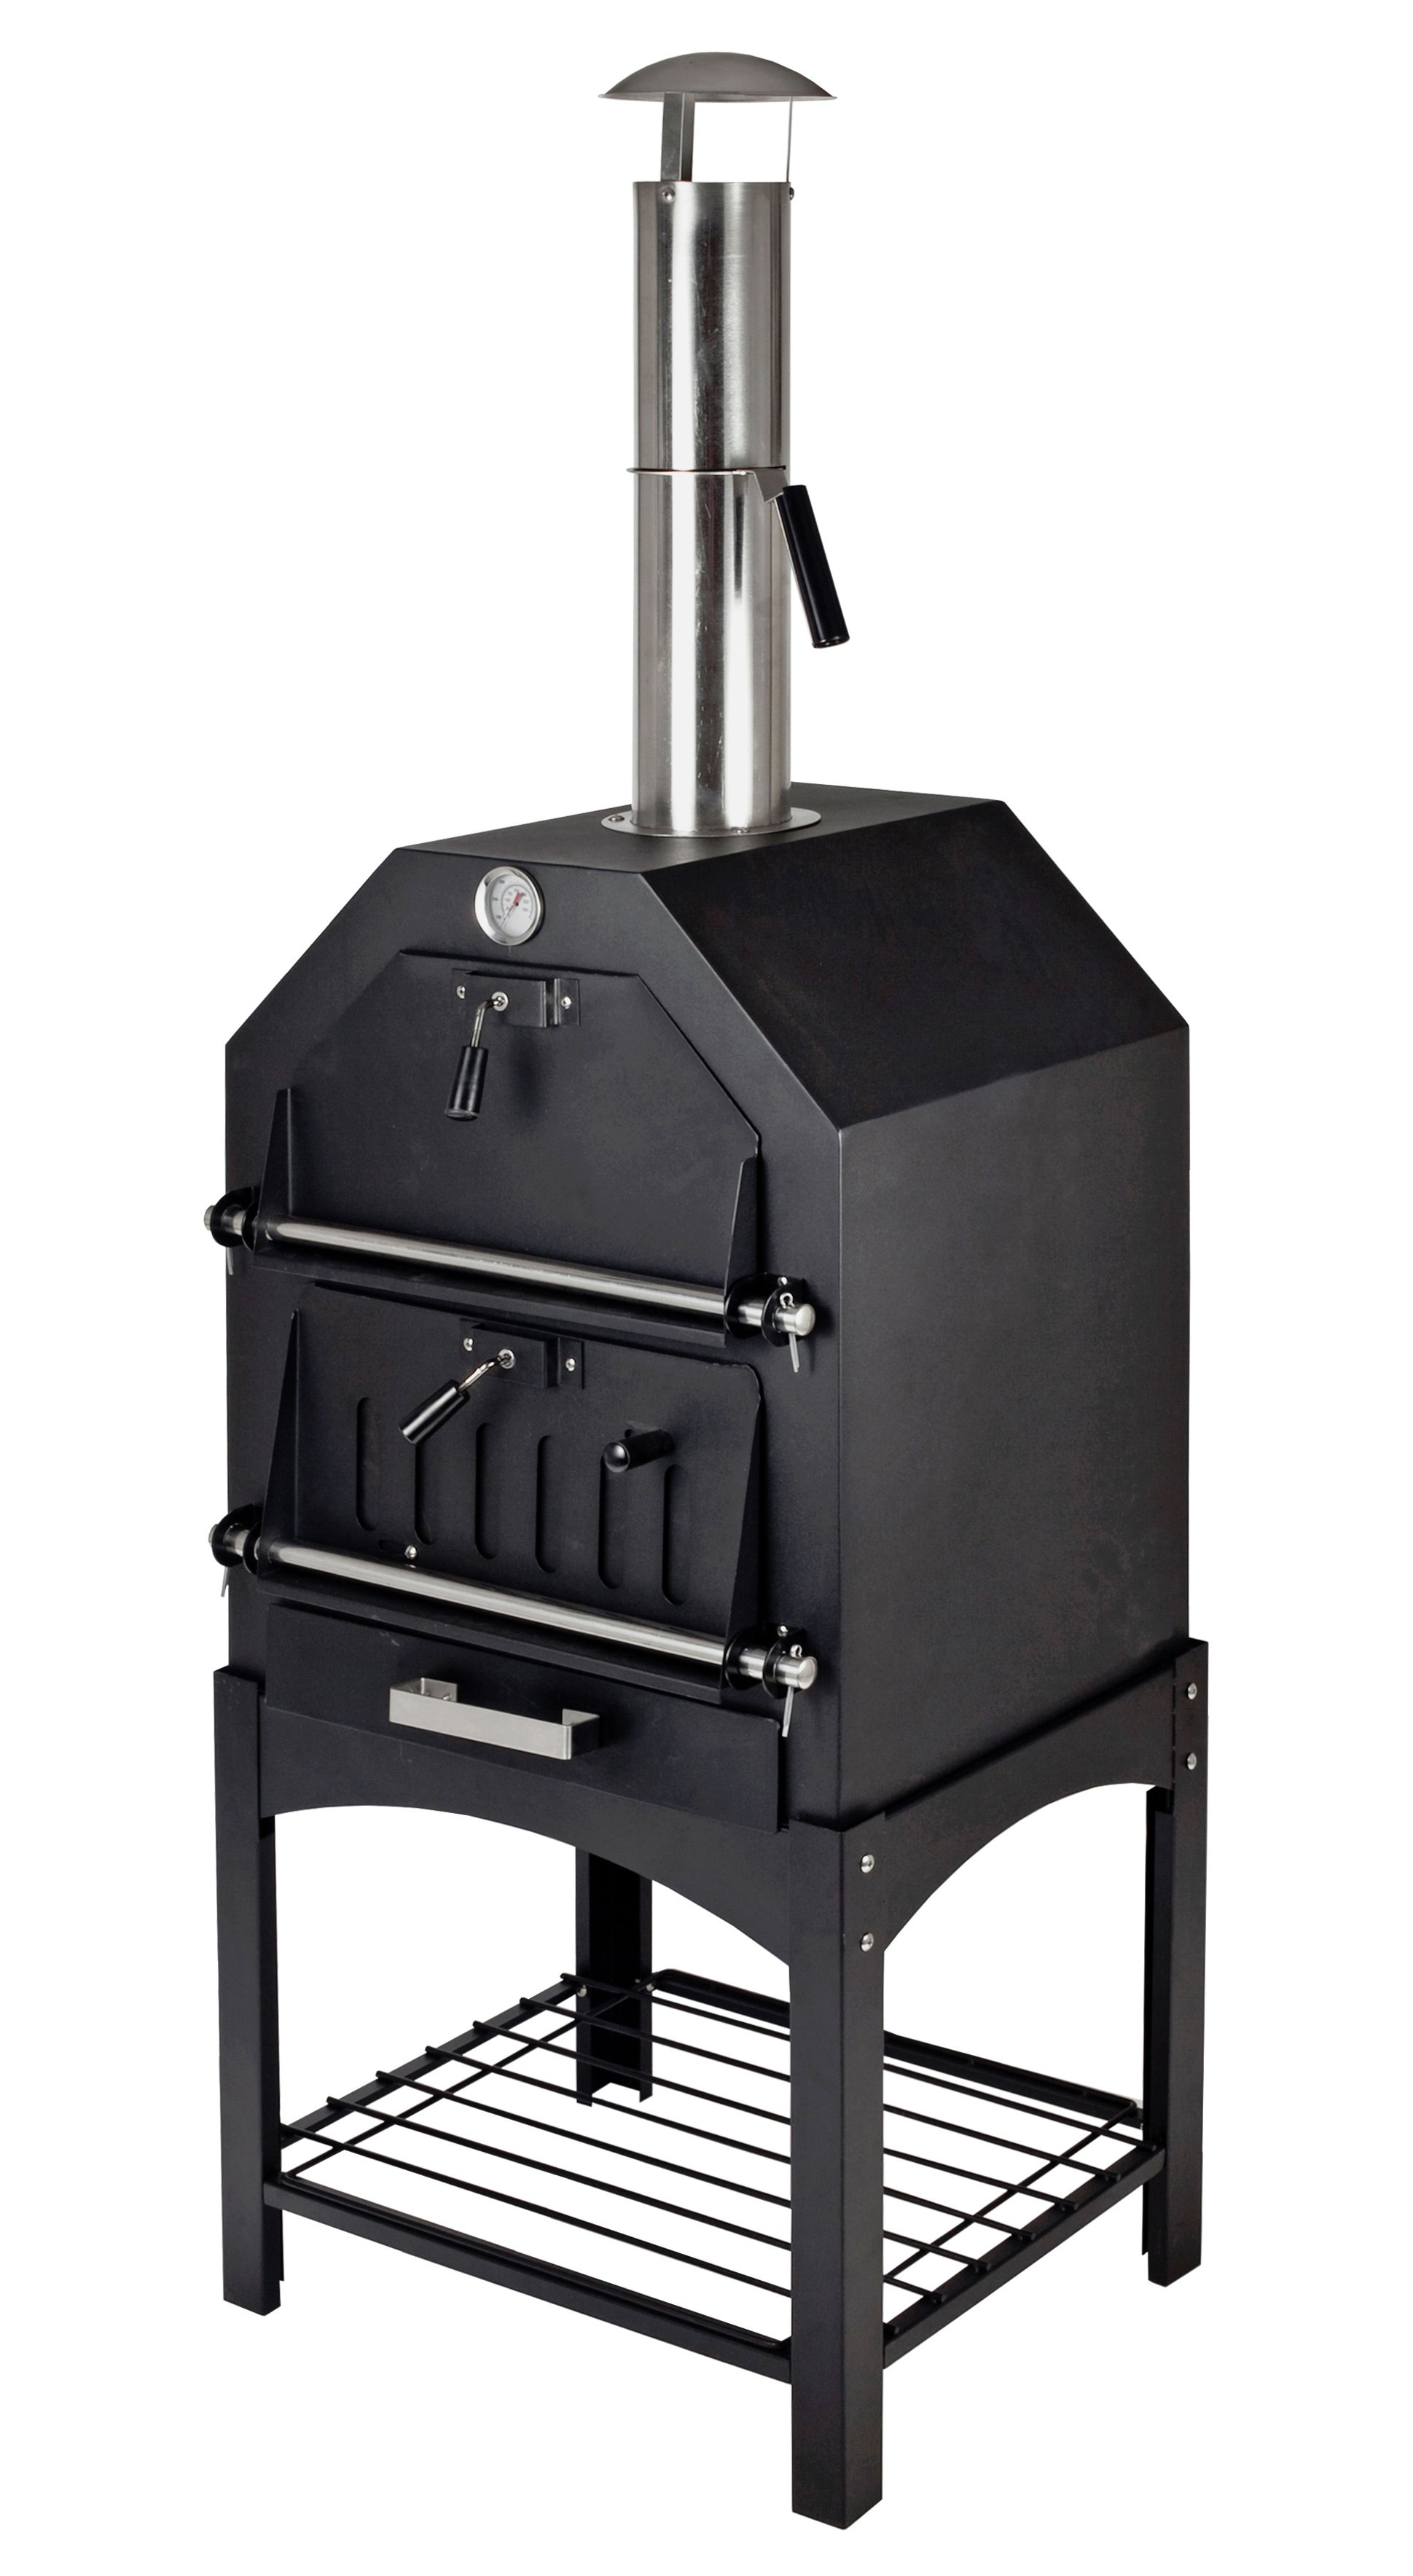 la-hacienda-steel-multi-function-pizza-oven